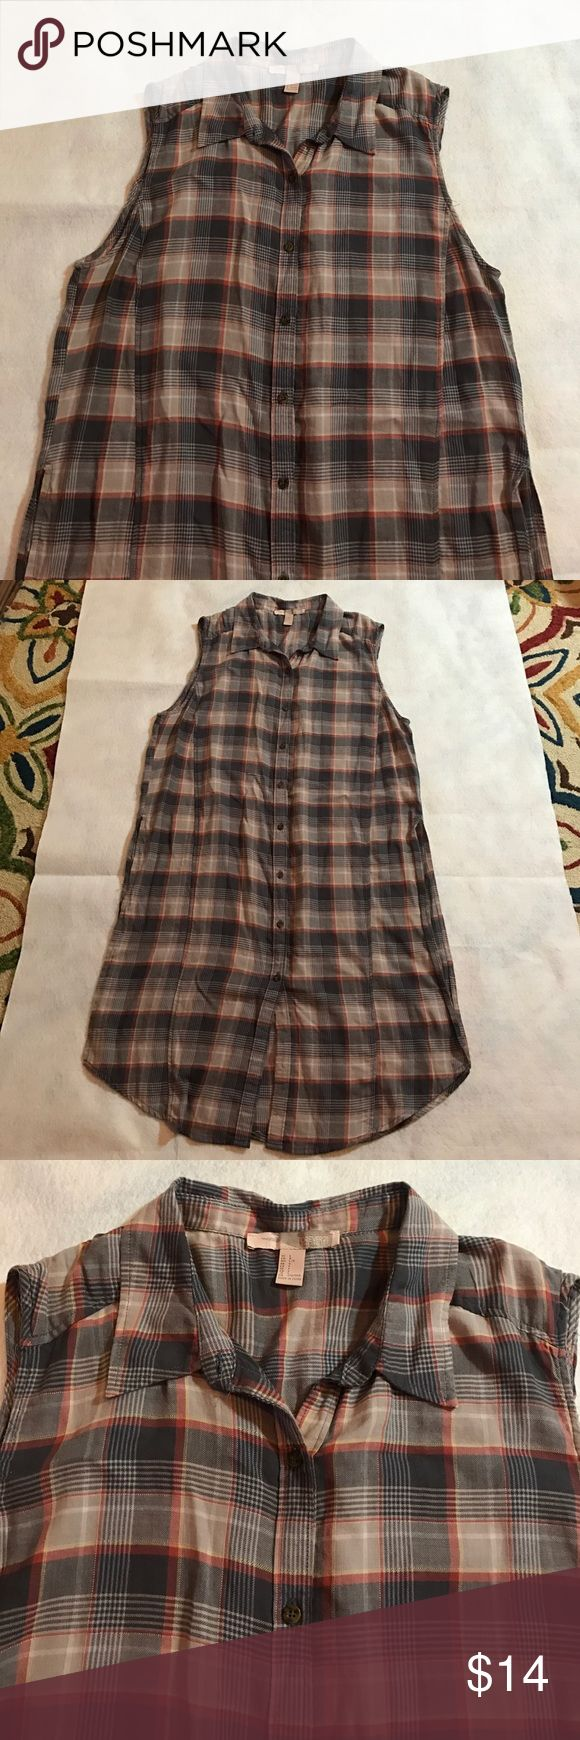 Long short sleeves neutral plaid shirt/tunic/dress Great little VGUC item that can be wore as s dress, shirt or tunic depending on your desired styling. Long slide slits for comfort and ease of wear. BRown, cream, red, yellow plaid. Soft light brushed cotton feel. Forever 21 Tops Button Down Shirts